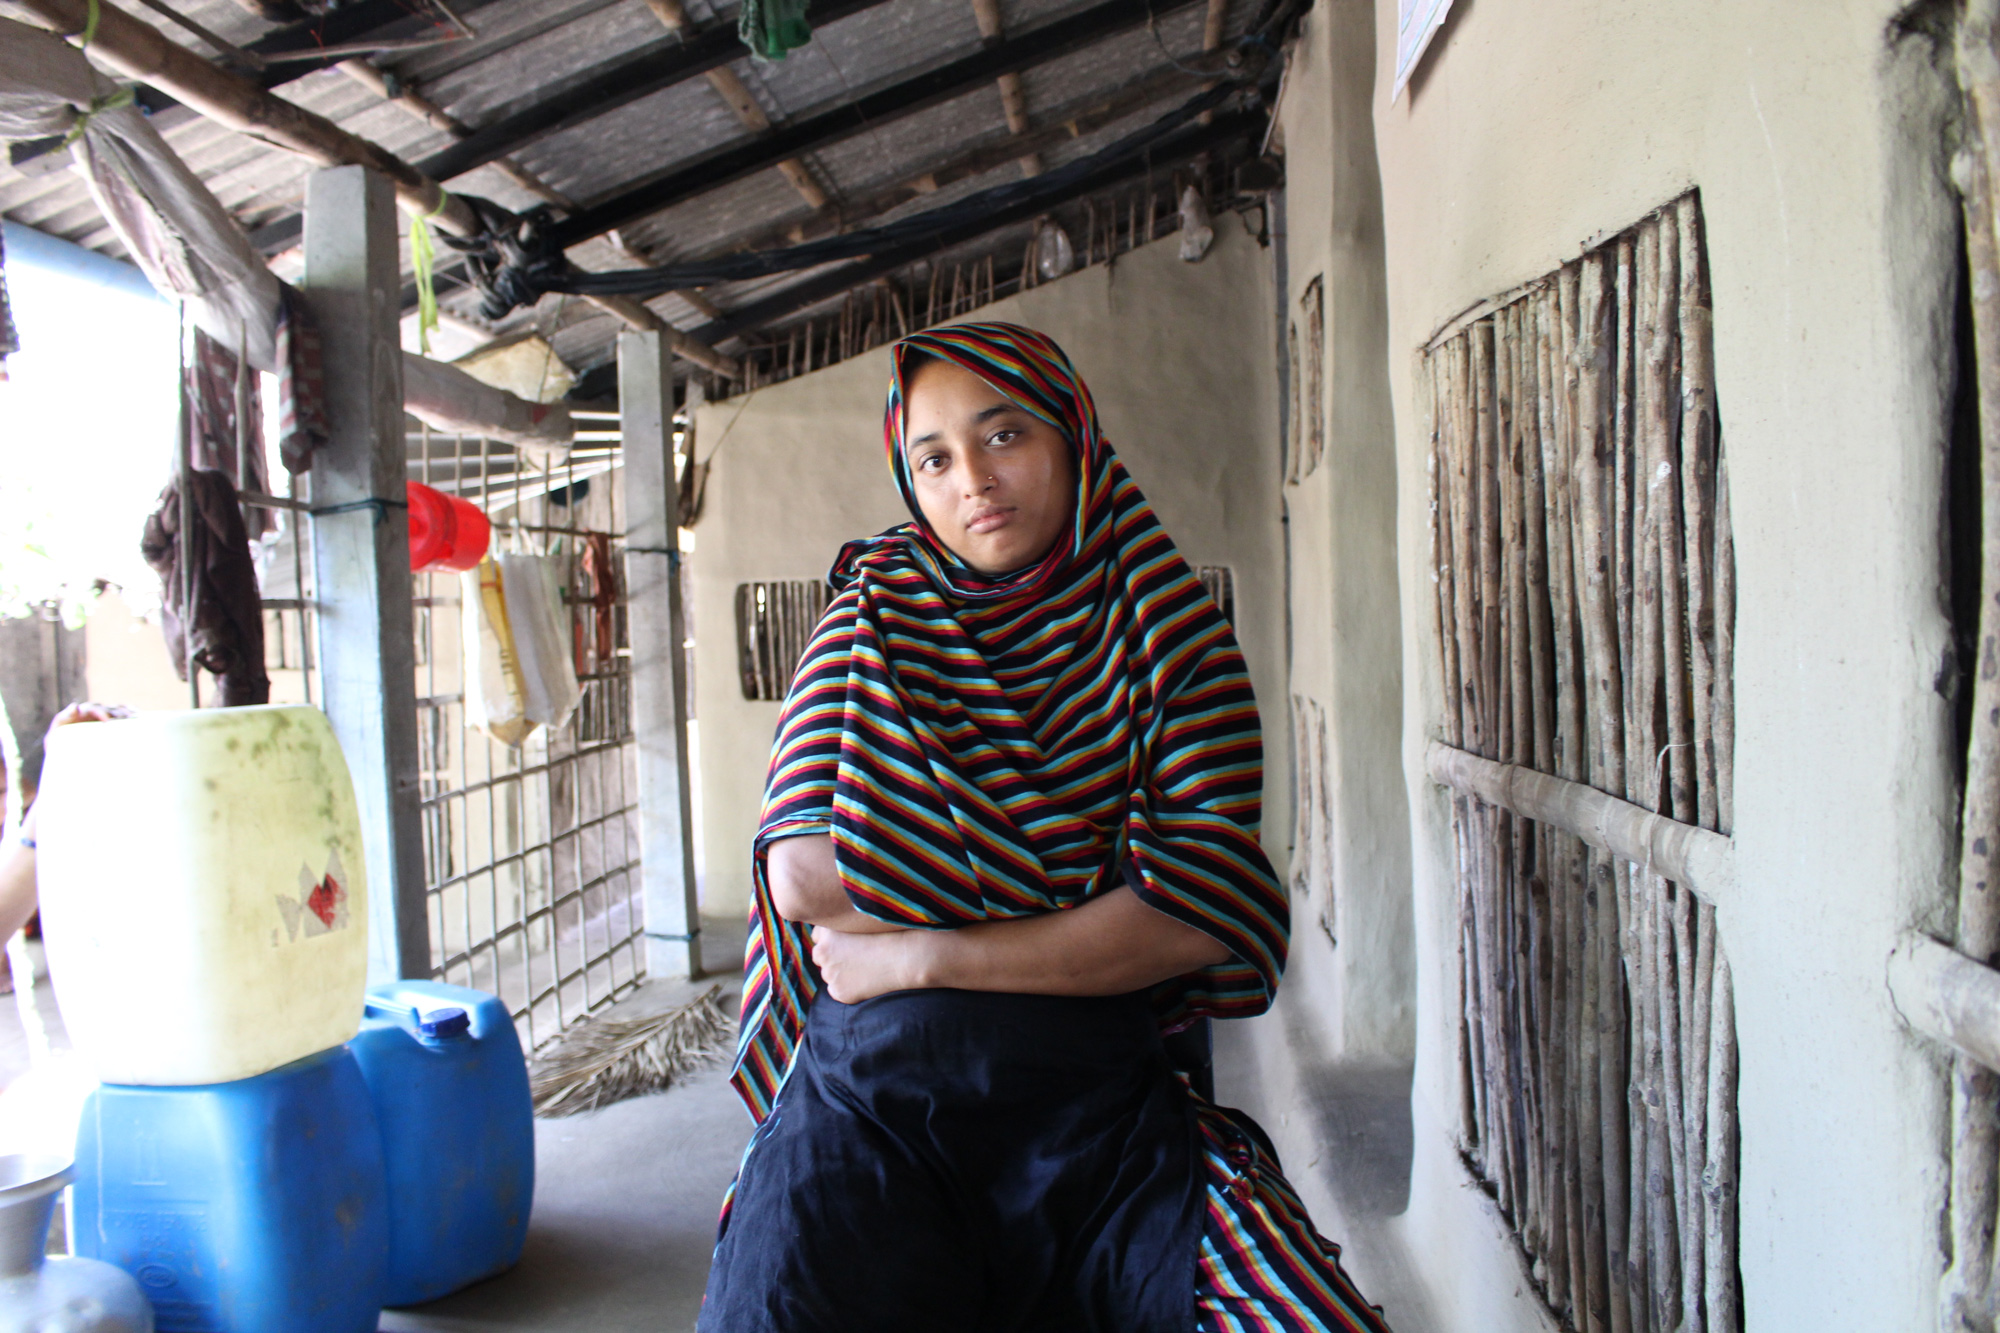 Khadija Begum, 24, has been married for 10 years. Before she became pregnant, she lived for a few years with her husband, who works as in a garment workshop in Dhaka. (Photo by Neha Thirani Bagri/GroundTruth)